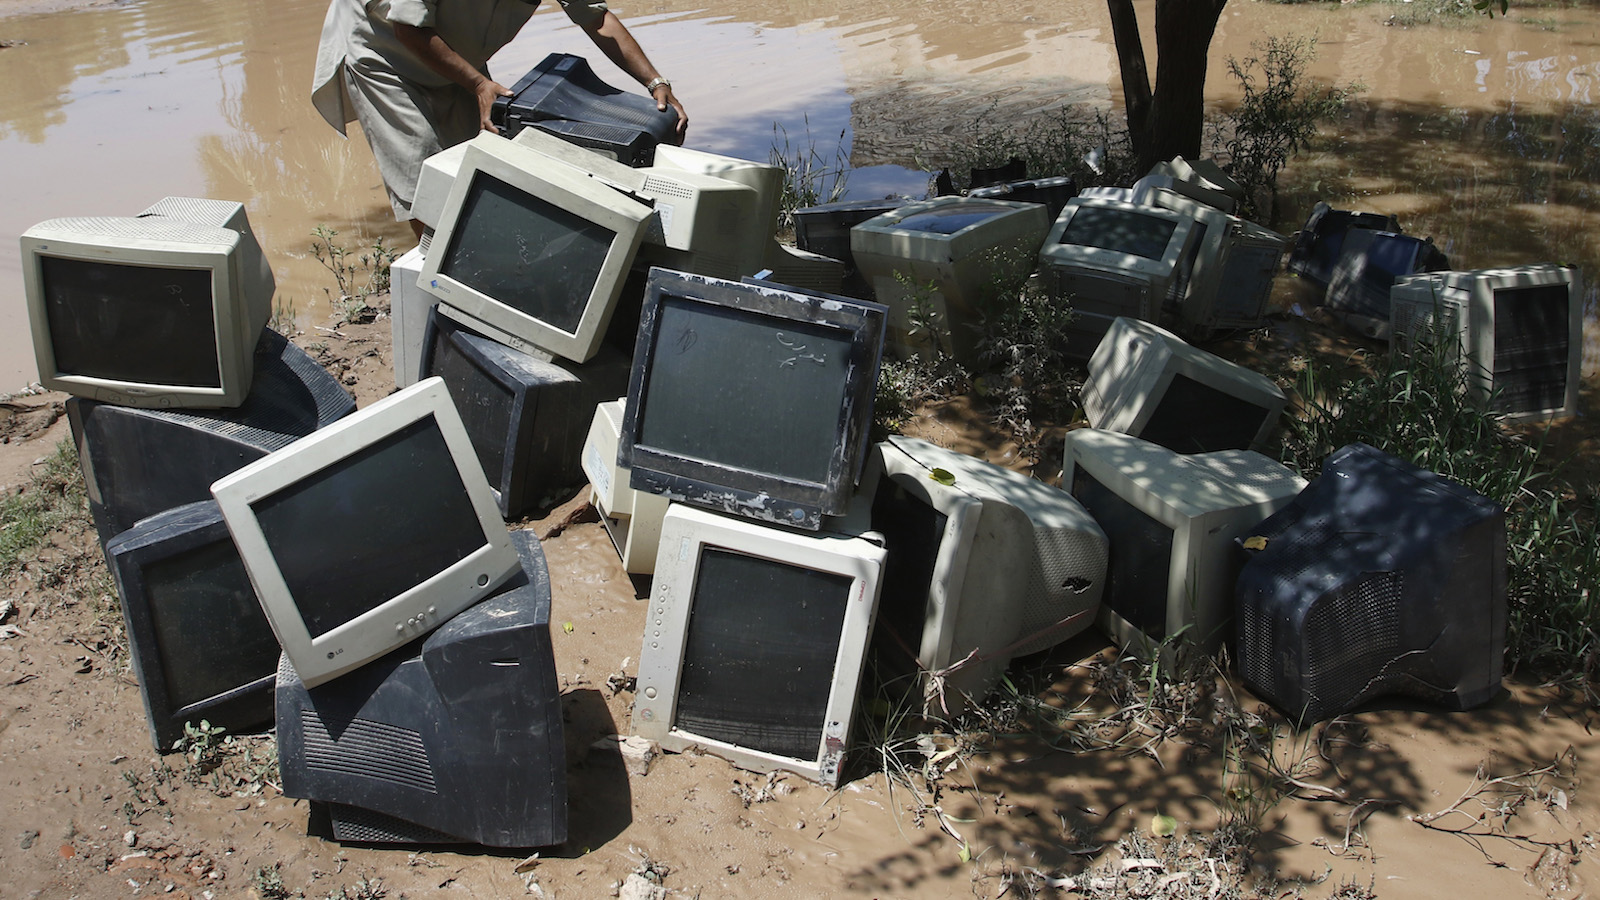 A worker moves old computer monitors after heavy rainfall caused flooding in Peshawar, Pakistan, July 27, 2015. Flash flooding caused by torrential monsoon rains has killed at least 28 in Pakistan and affected hundreds of thousands of people, according to aid agencies, with further downpours expected in the coming days. REUTERS/ Khuram Parvez - RTX1LY9Q